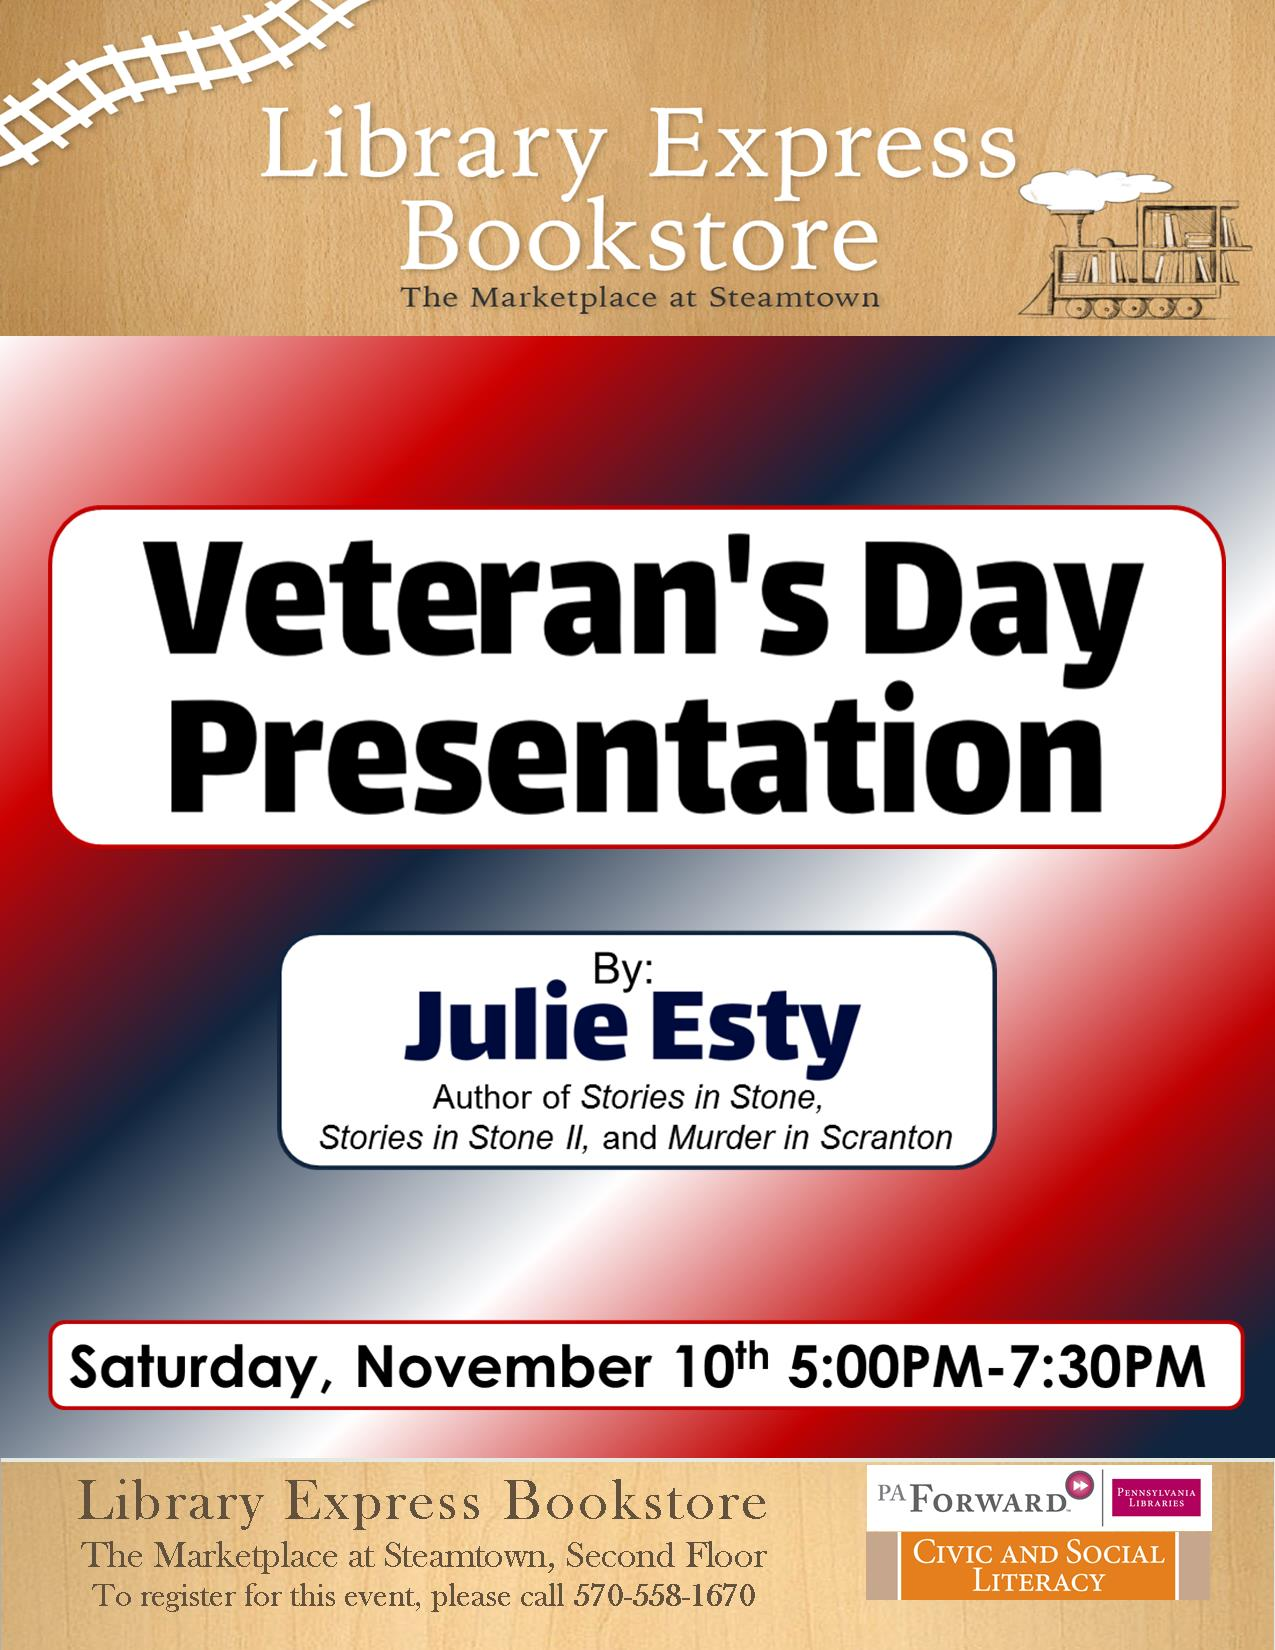 Veteran's Day Presentation